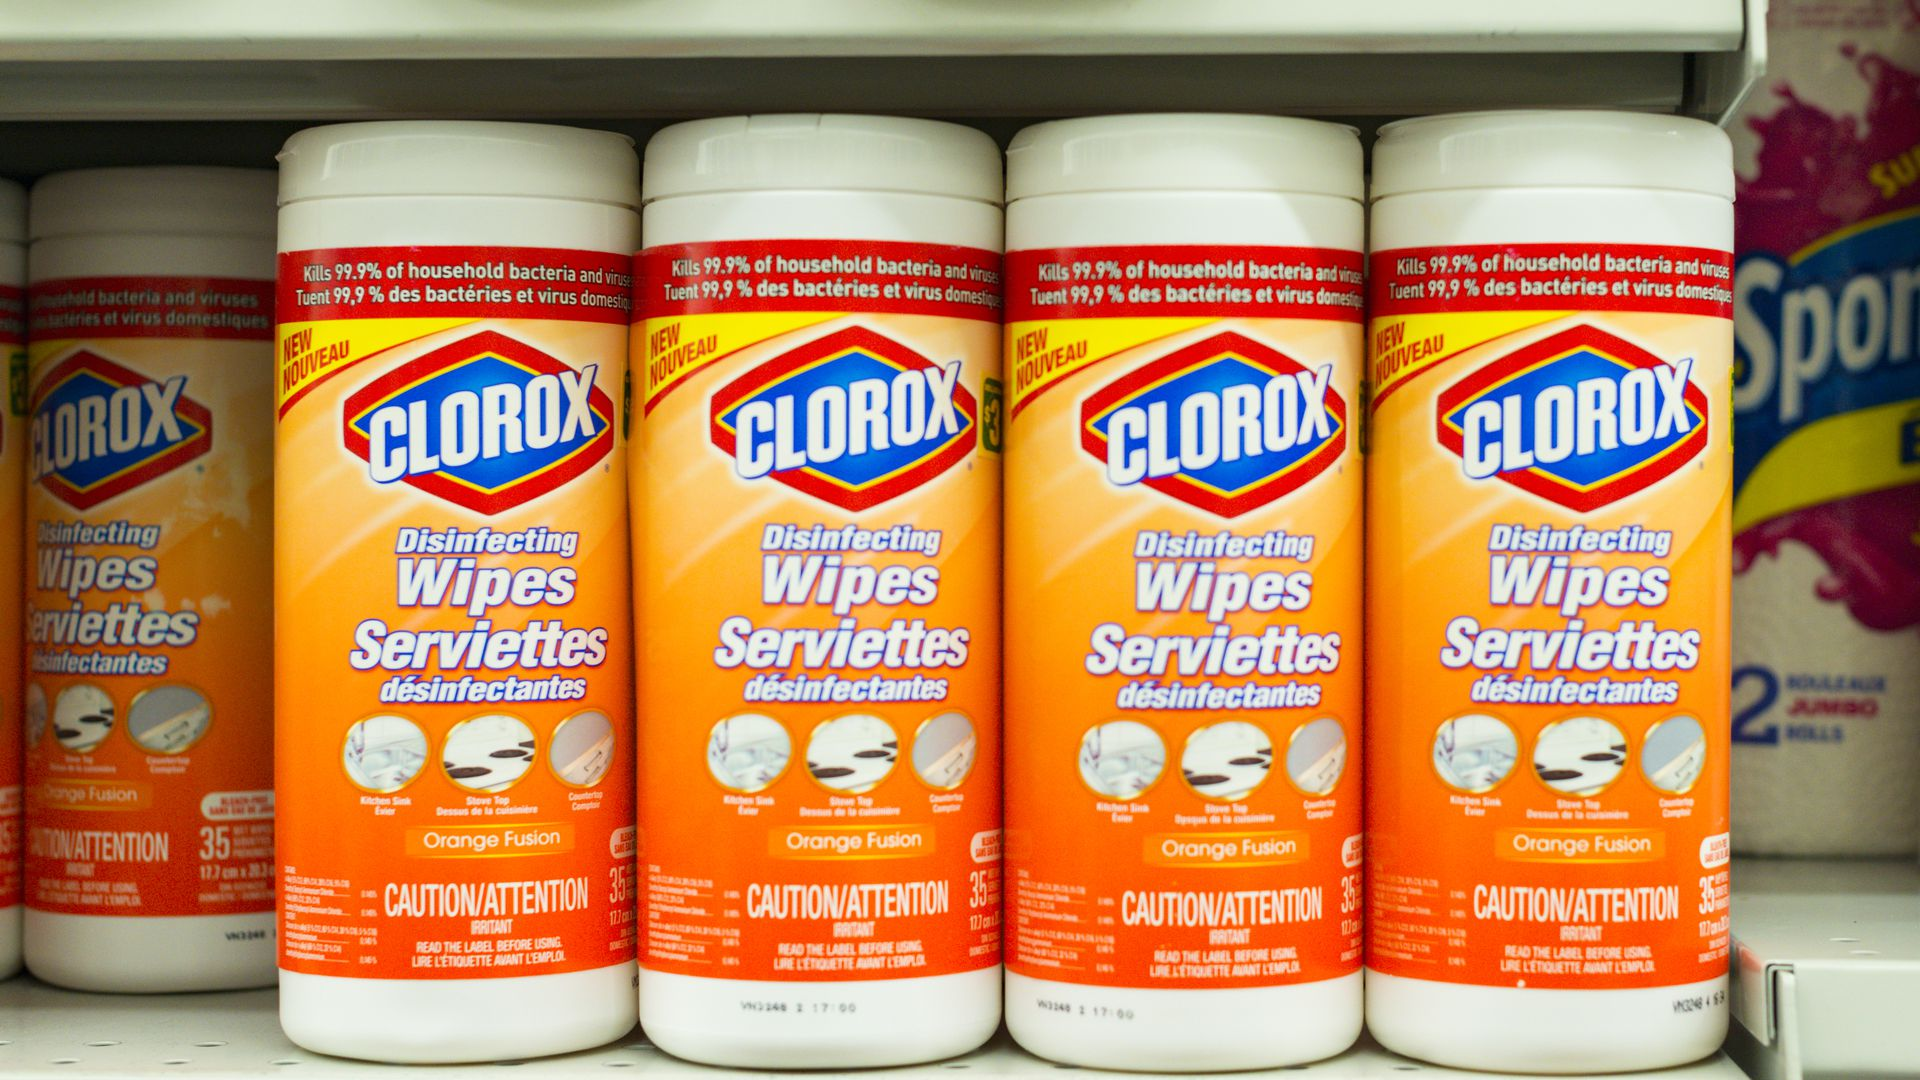 Bottles of Clorox disinfectant wipes.